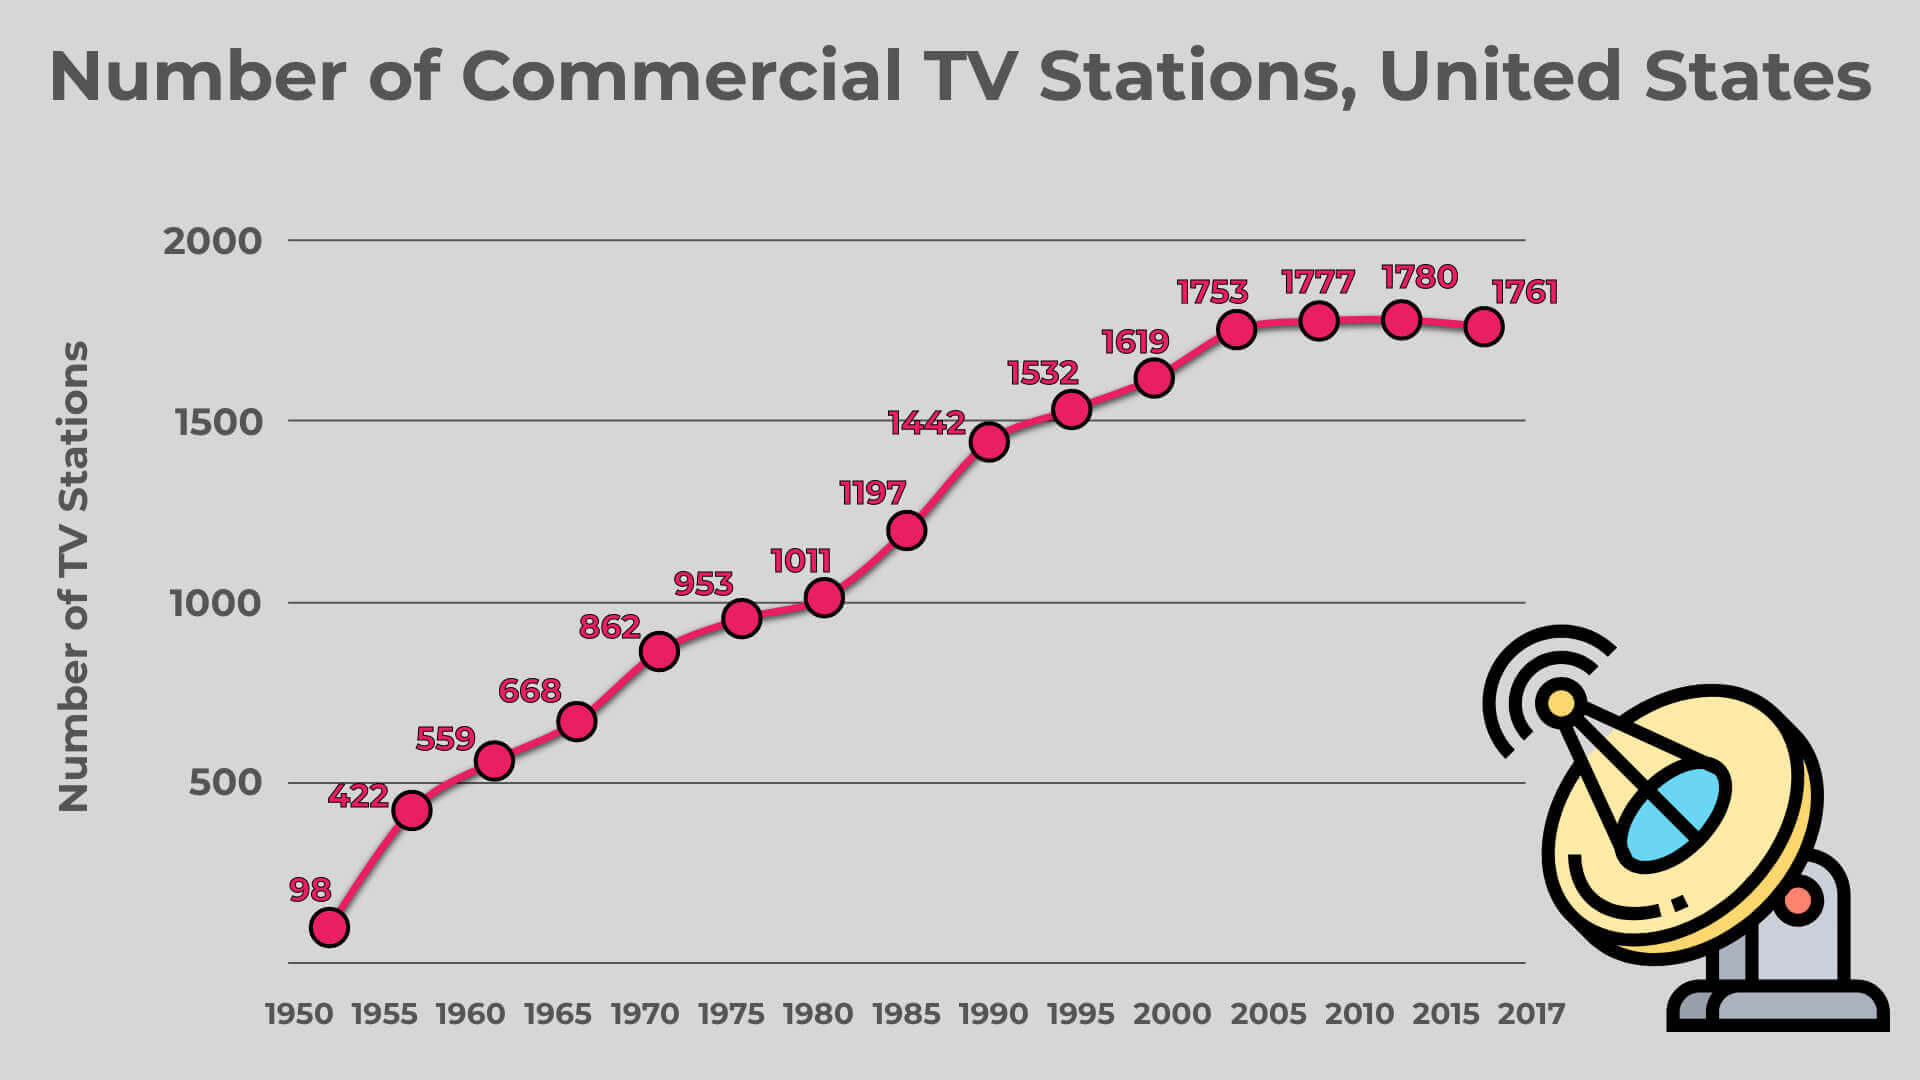 4. Number of Commercial TV Stations United States